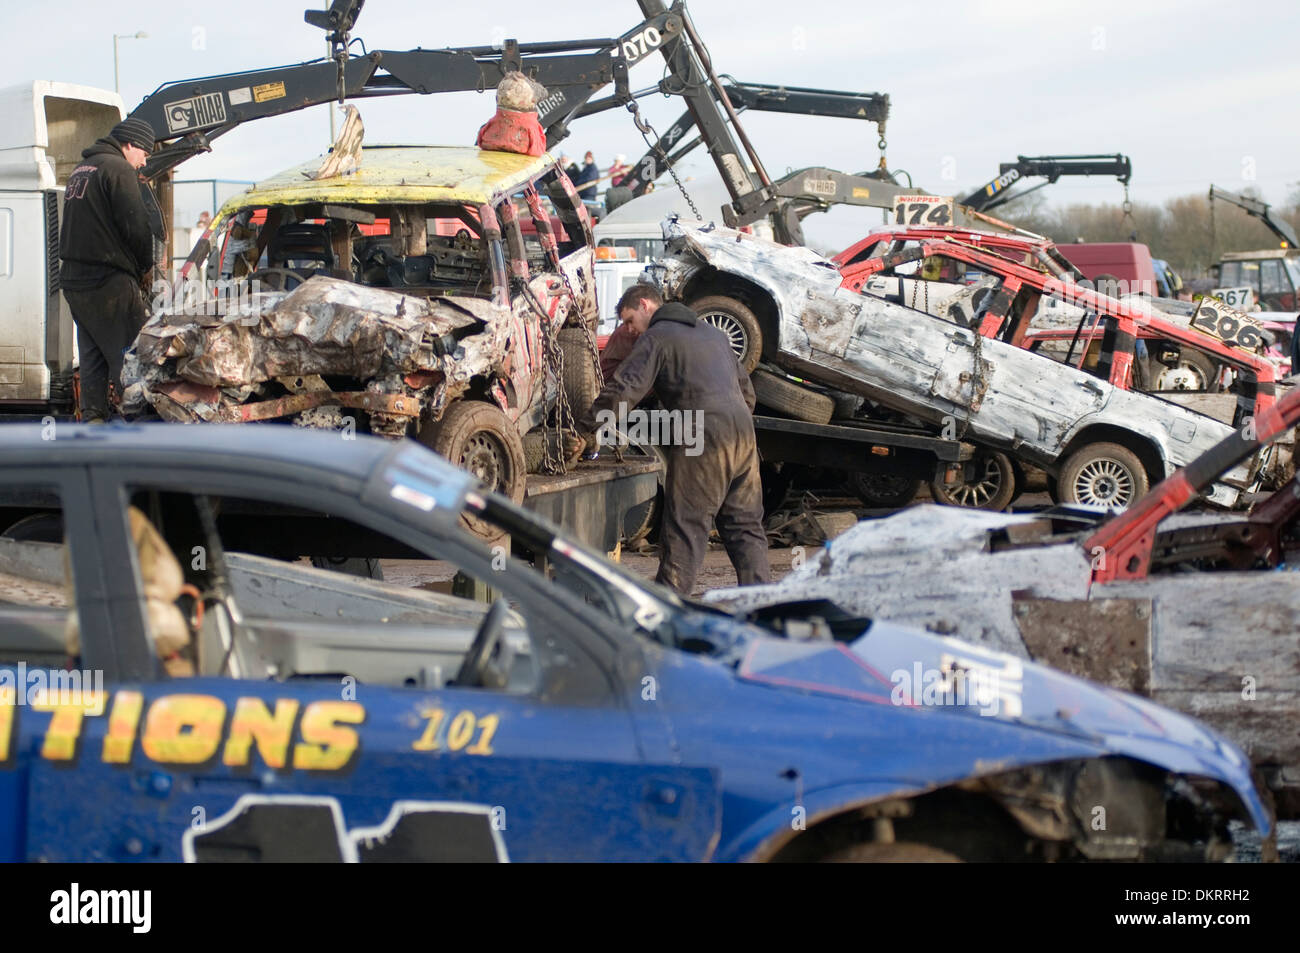 stock photo banger racing pit pits stock car cars old repairing mechanic mechanics fix fixing racing stripped out event events race races ra